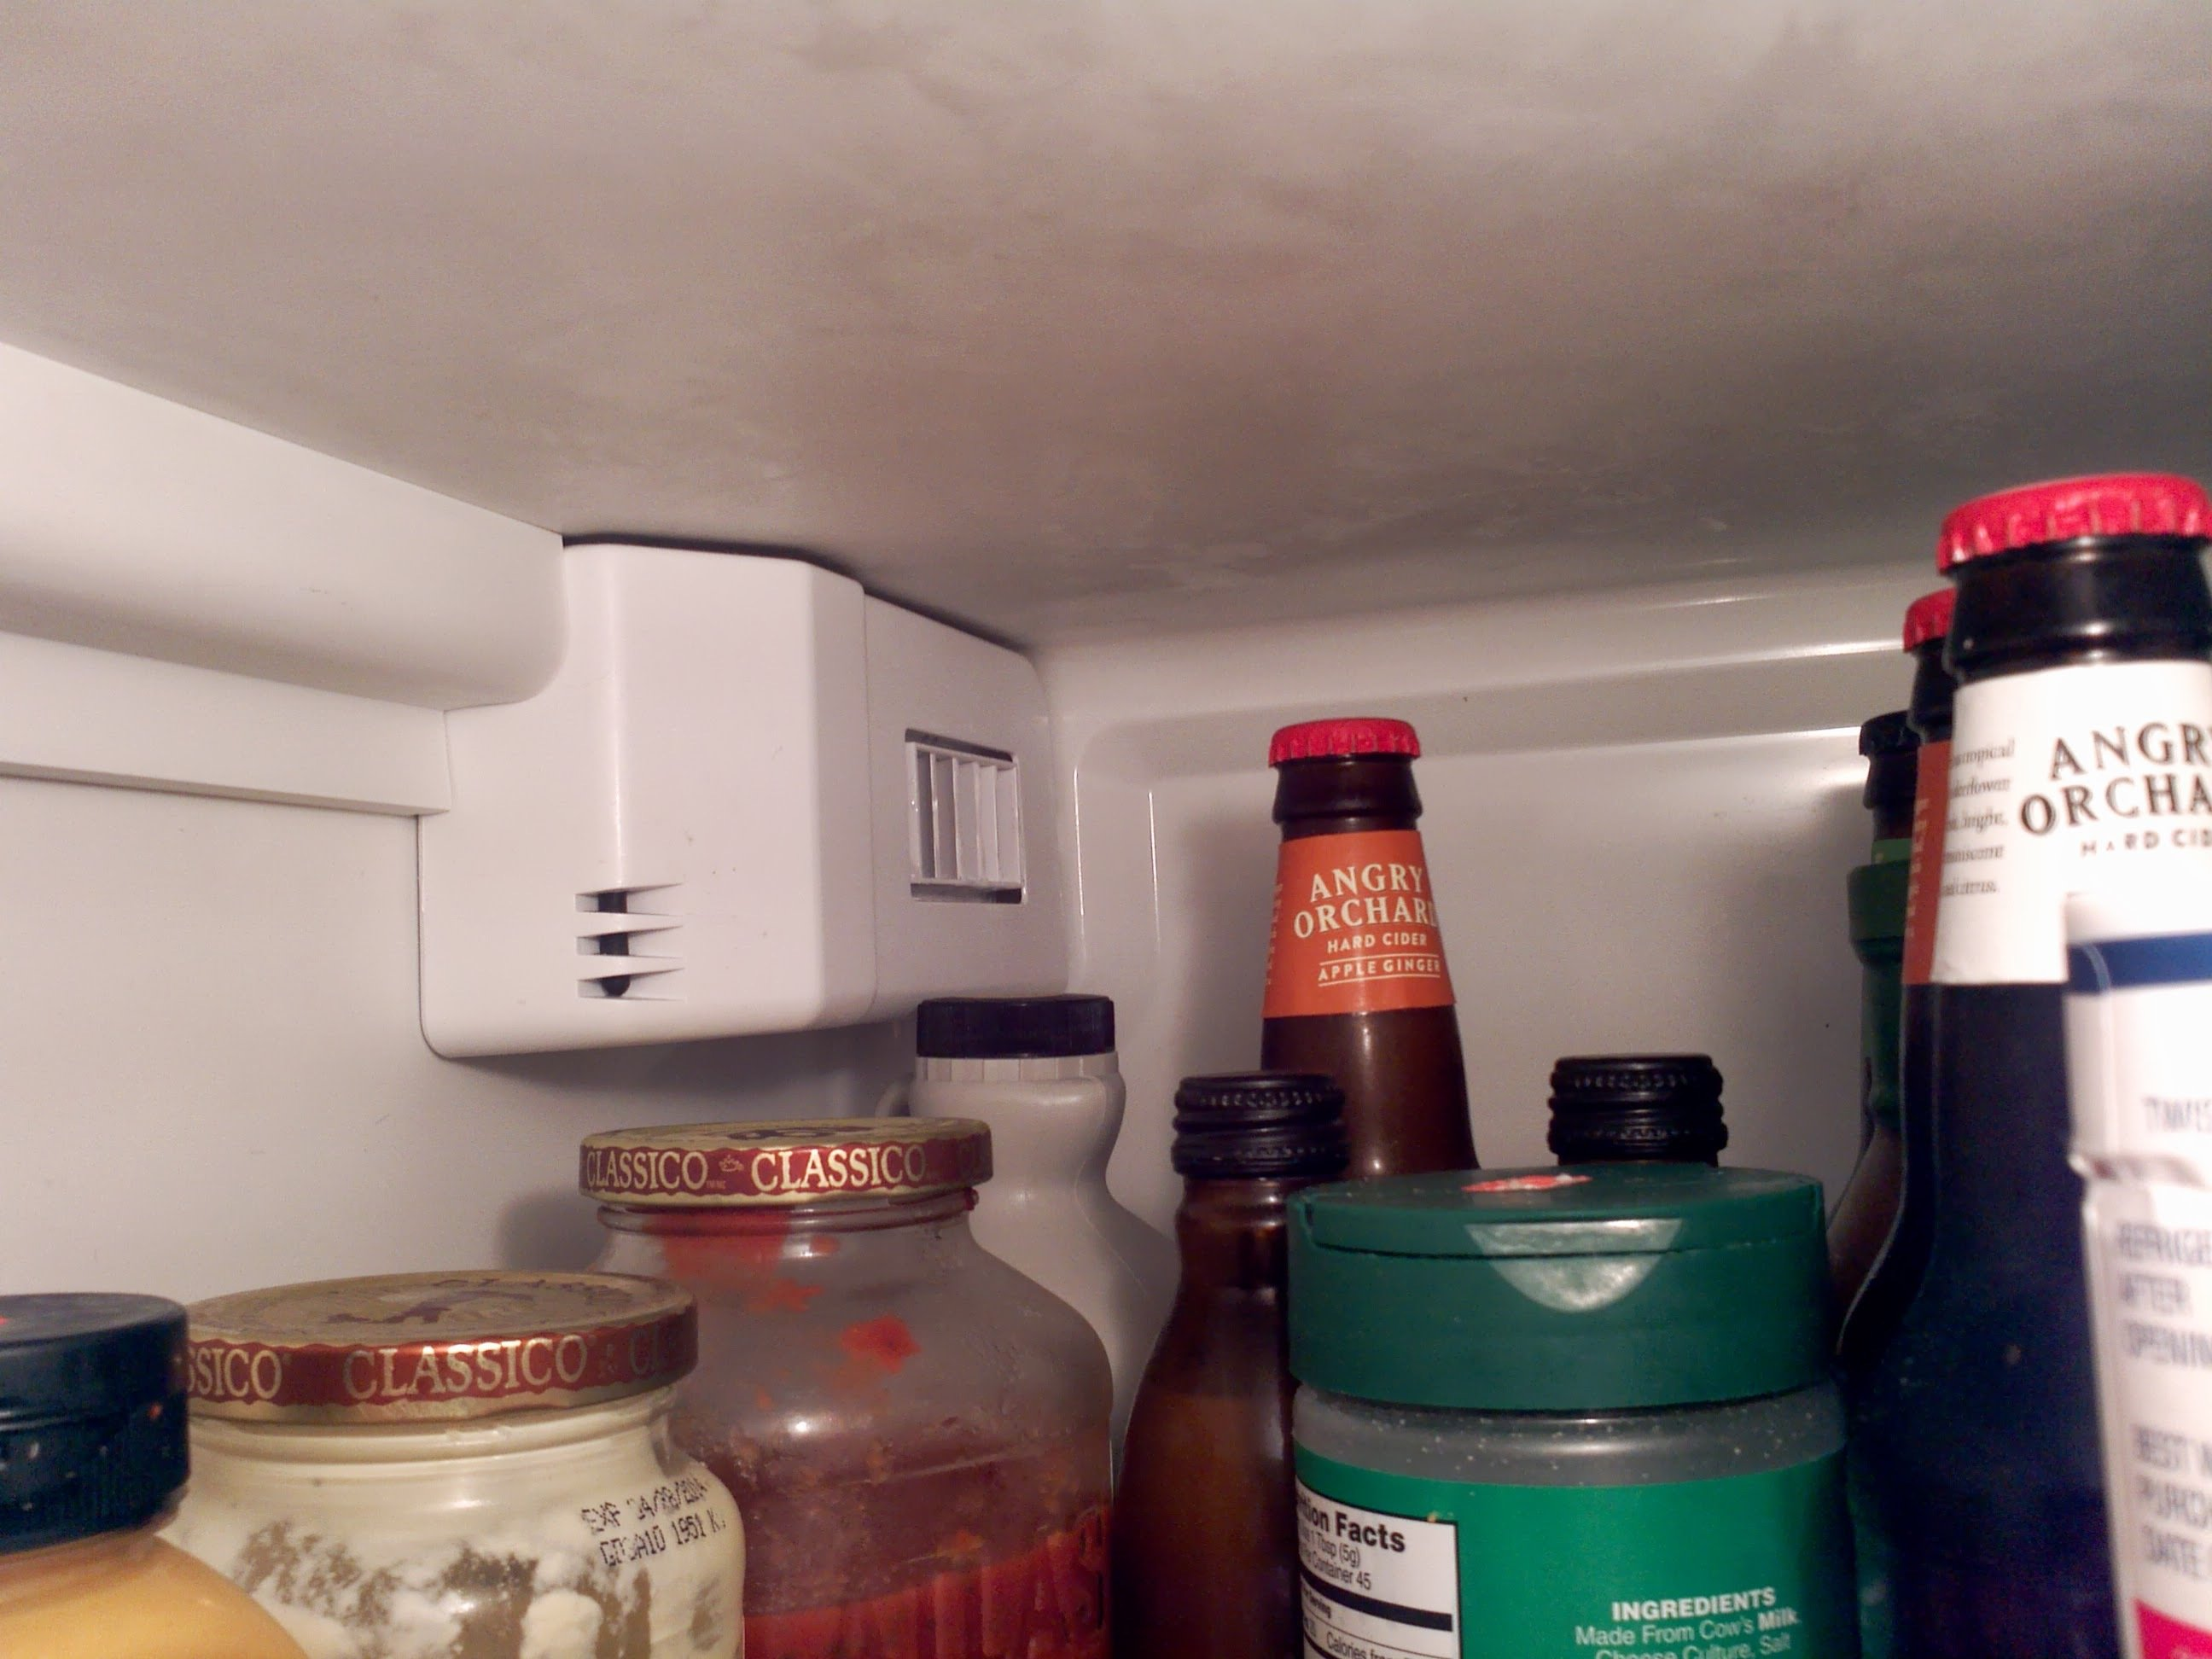 Repairing Side-by-side Refrigerator Diffuser - iFixit Repair Guide